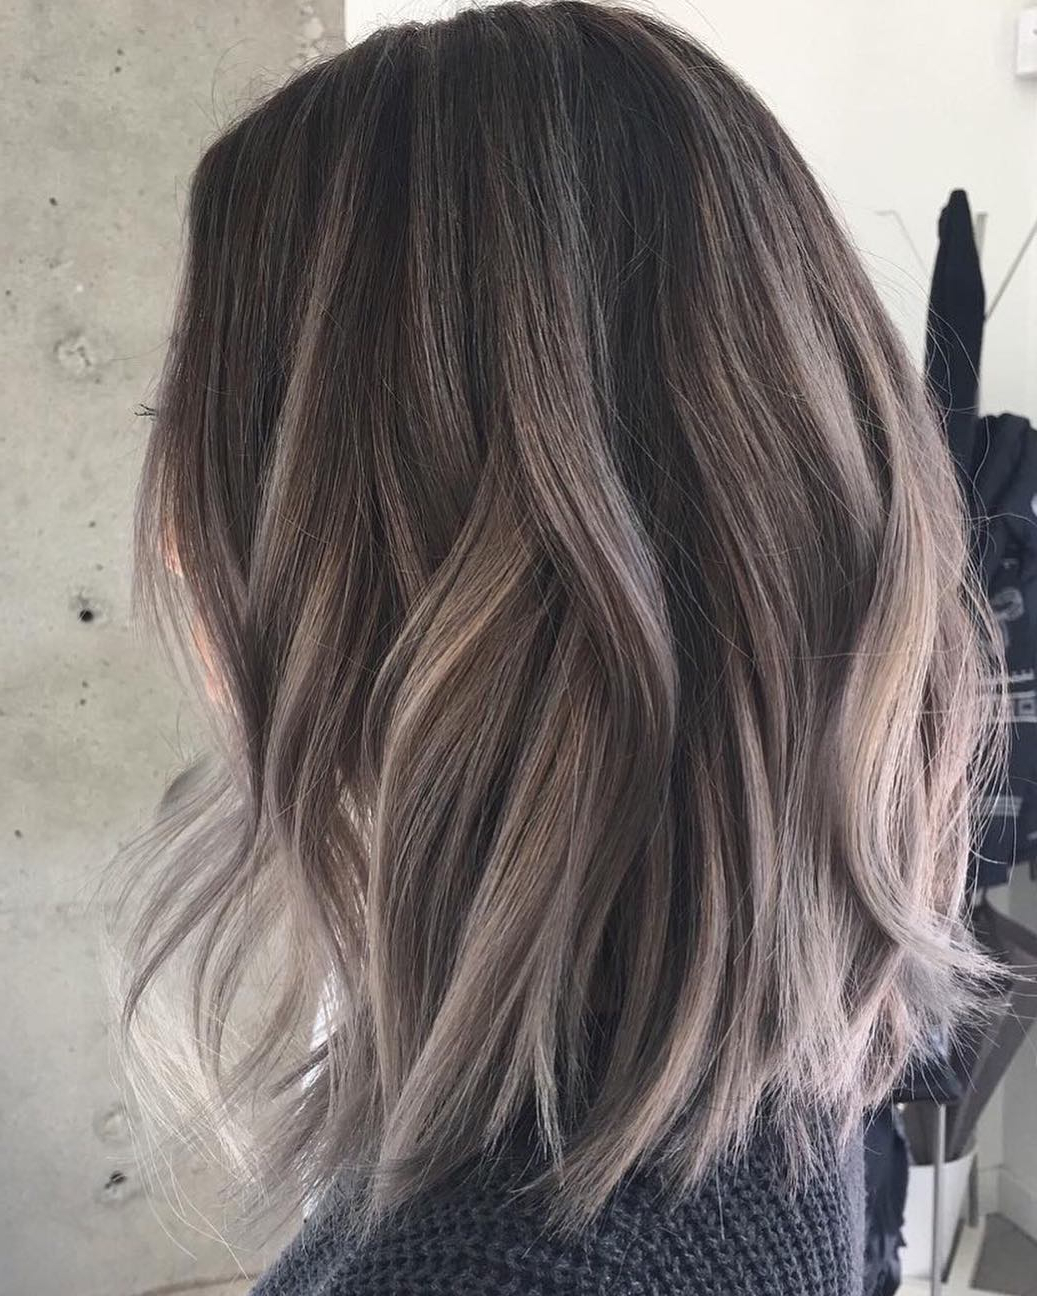 10 Medium Length Hair Color Ideas 2019 Pertaining To Widely Used Pinks Medium Haircuts (View 1 of 20)